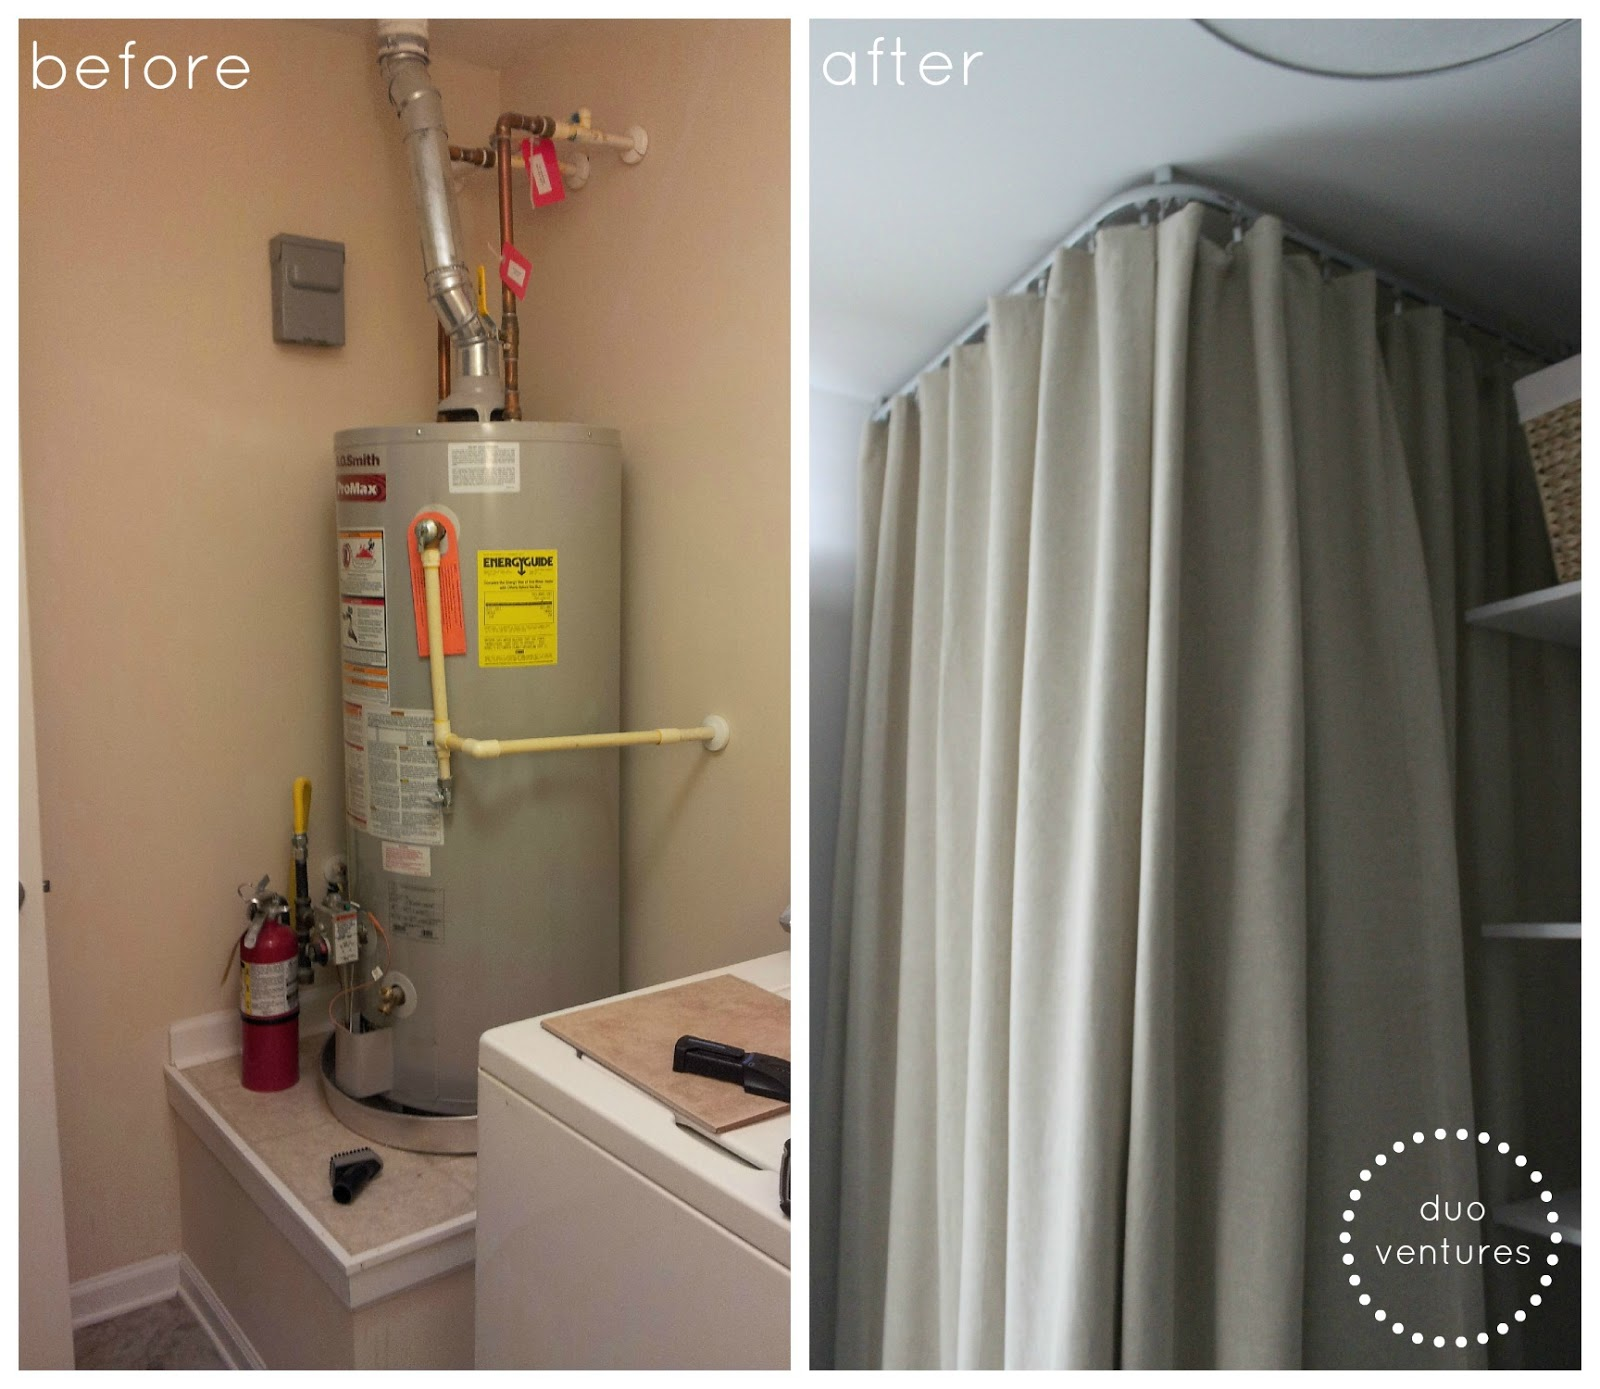 The Best Places For A Water Heater In Your Home Interior Design How To Turn Up